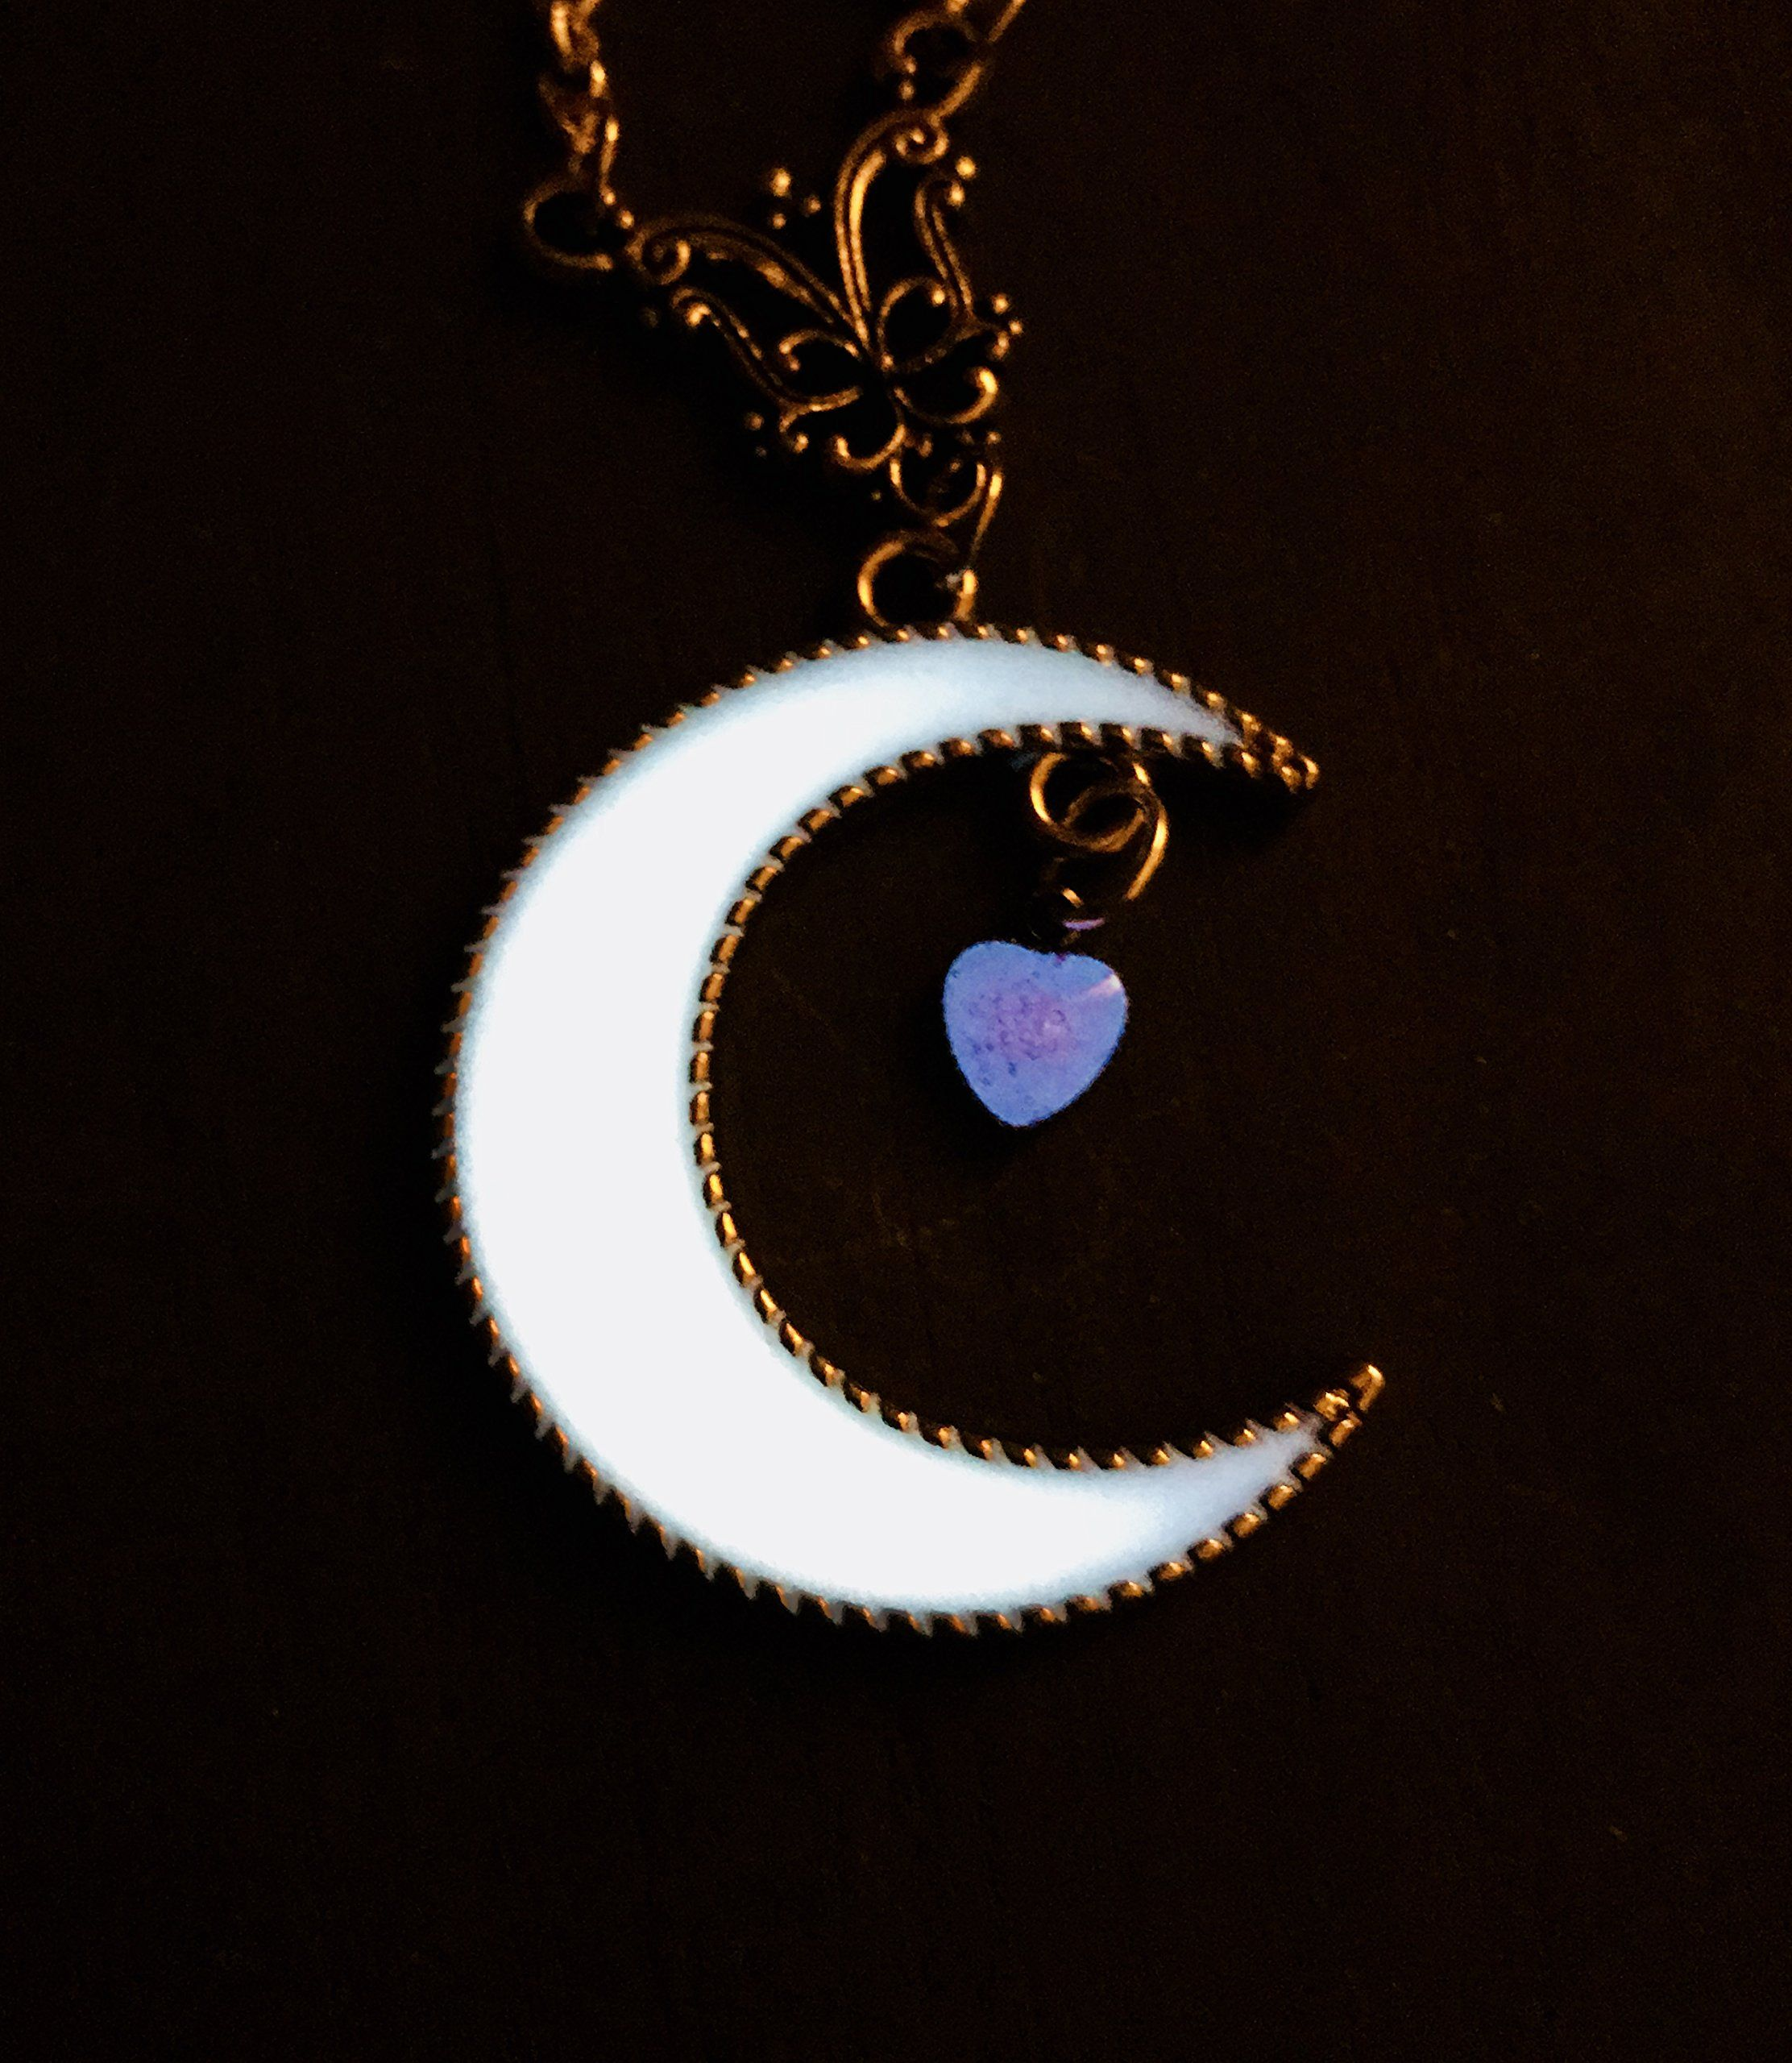 Sailor Moon Style White Glowing Crescent Moon With Pink Glow In The Dark Heart Charm Steampunk Cosplay Cost Cosplay Necklace Pendant Steampunk Cosplay Costumes